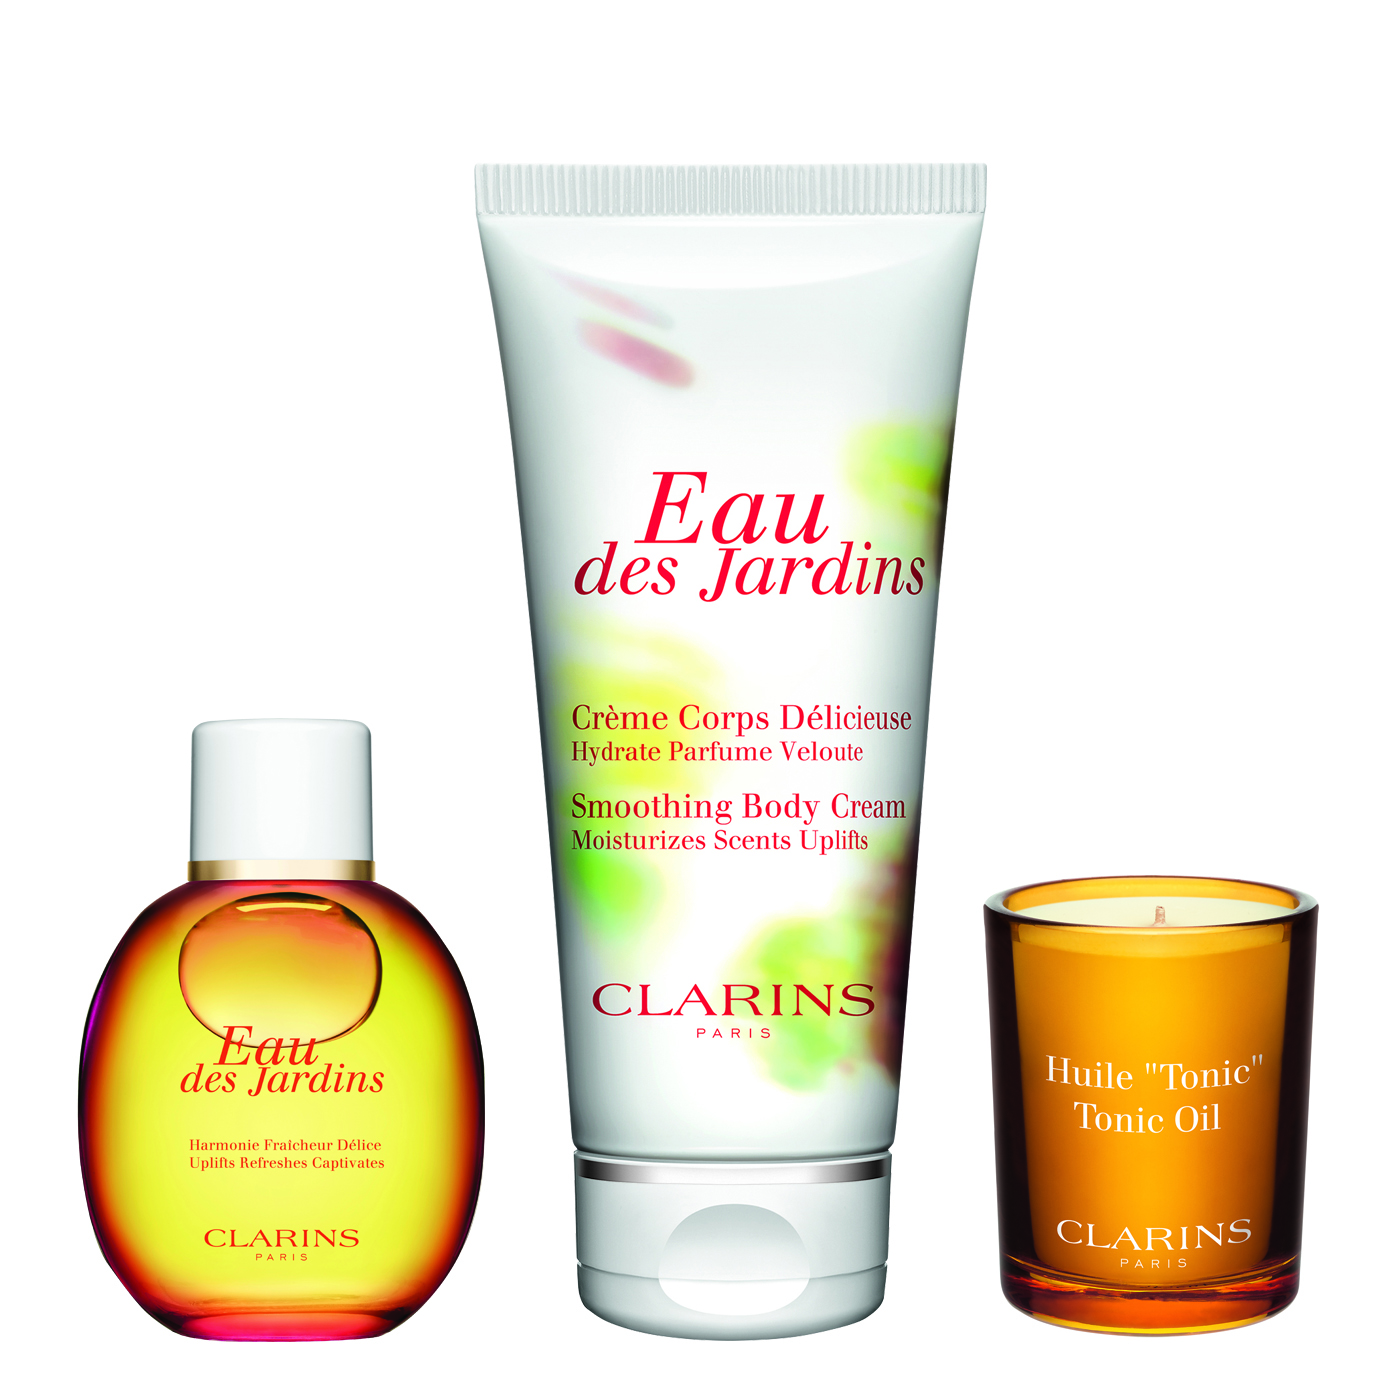 Receive a complimentary Clarins gift with July's Treatment of the Month - limited availability